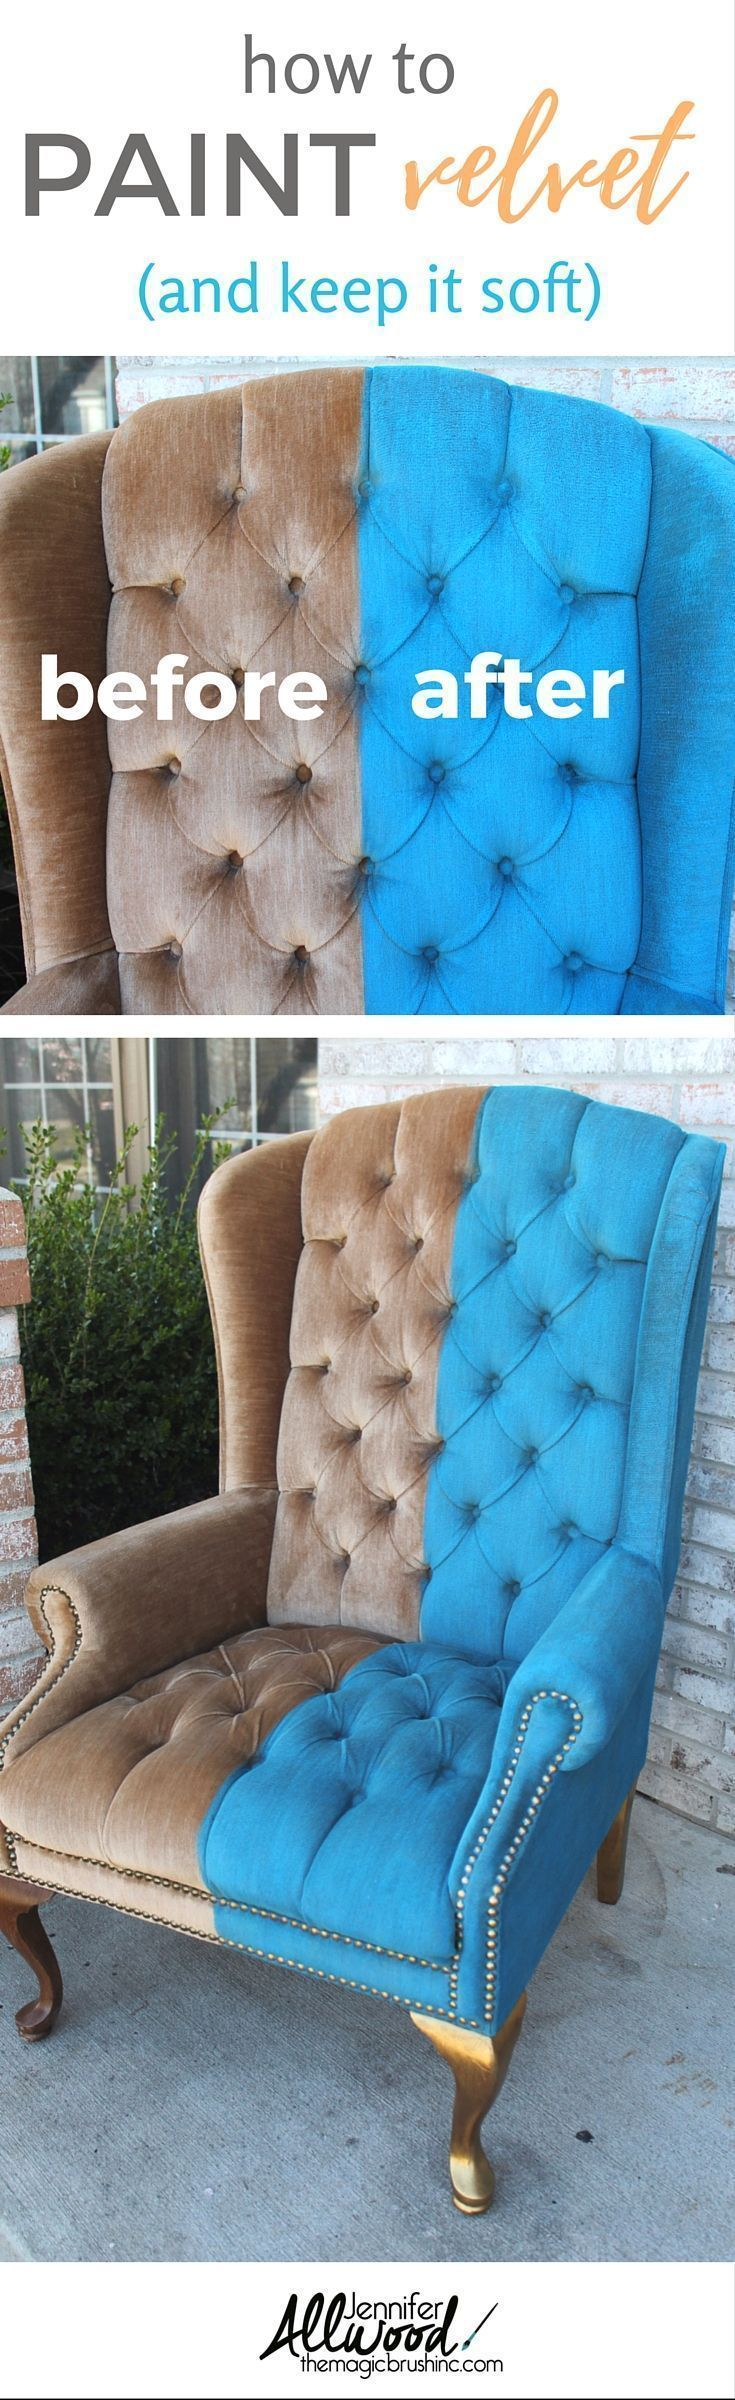 How to's : Here's how to paint crushed velvet and keep it soft! Give your upholstery furniture a facelift with a coat of paint! How to paint furniture and howt to paint fabric in this tutorial using FAB! More painting advice and DIY projects at theMagicBrushinc.com #diy #homedecor #diyhomedecor #paintedfurniture #painting #furniture #upholstery